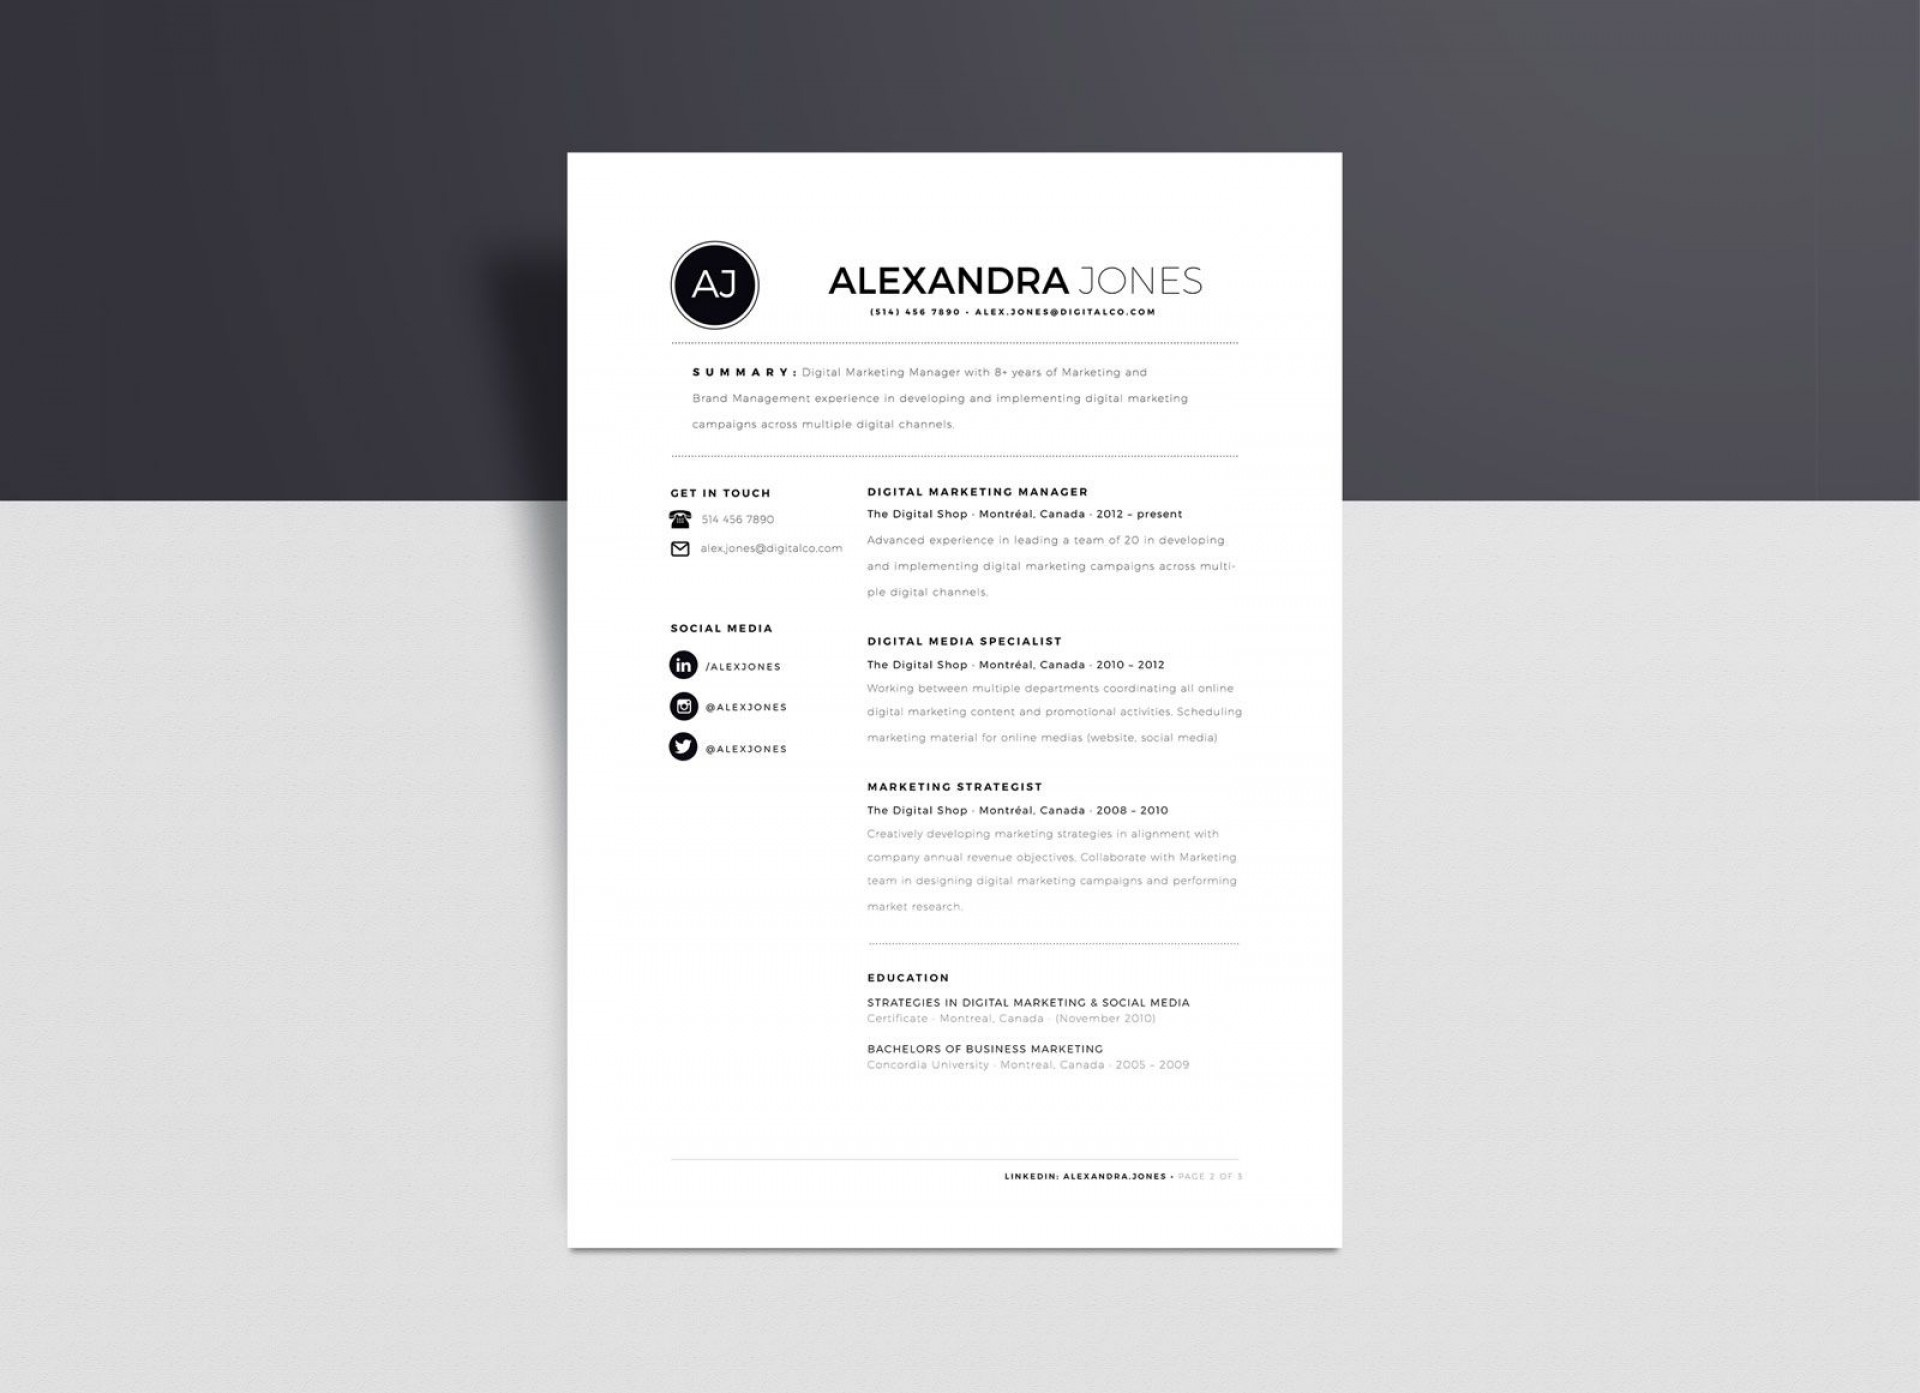 003 Remarkable Word Resume Template Free Image  Fresher Format Download 2020 M1920